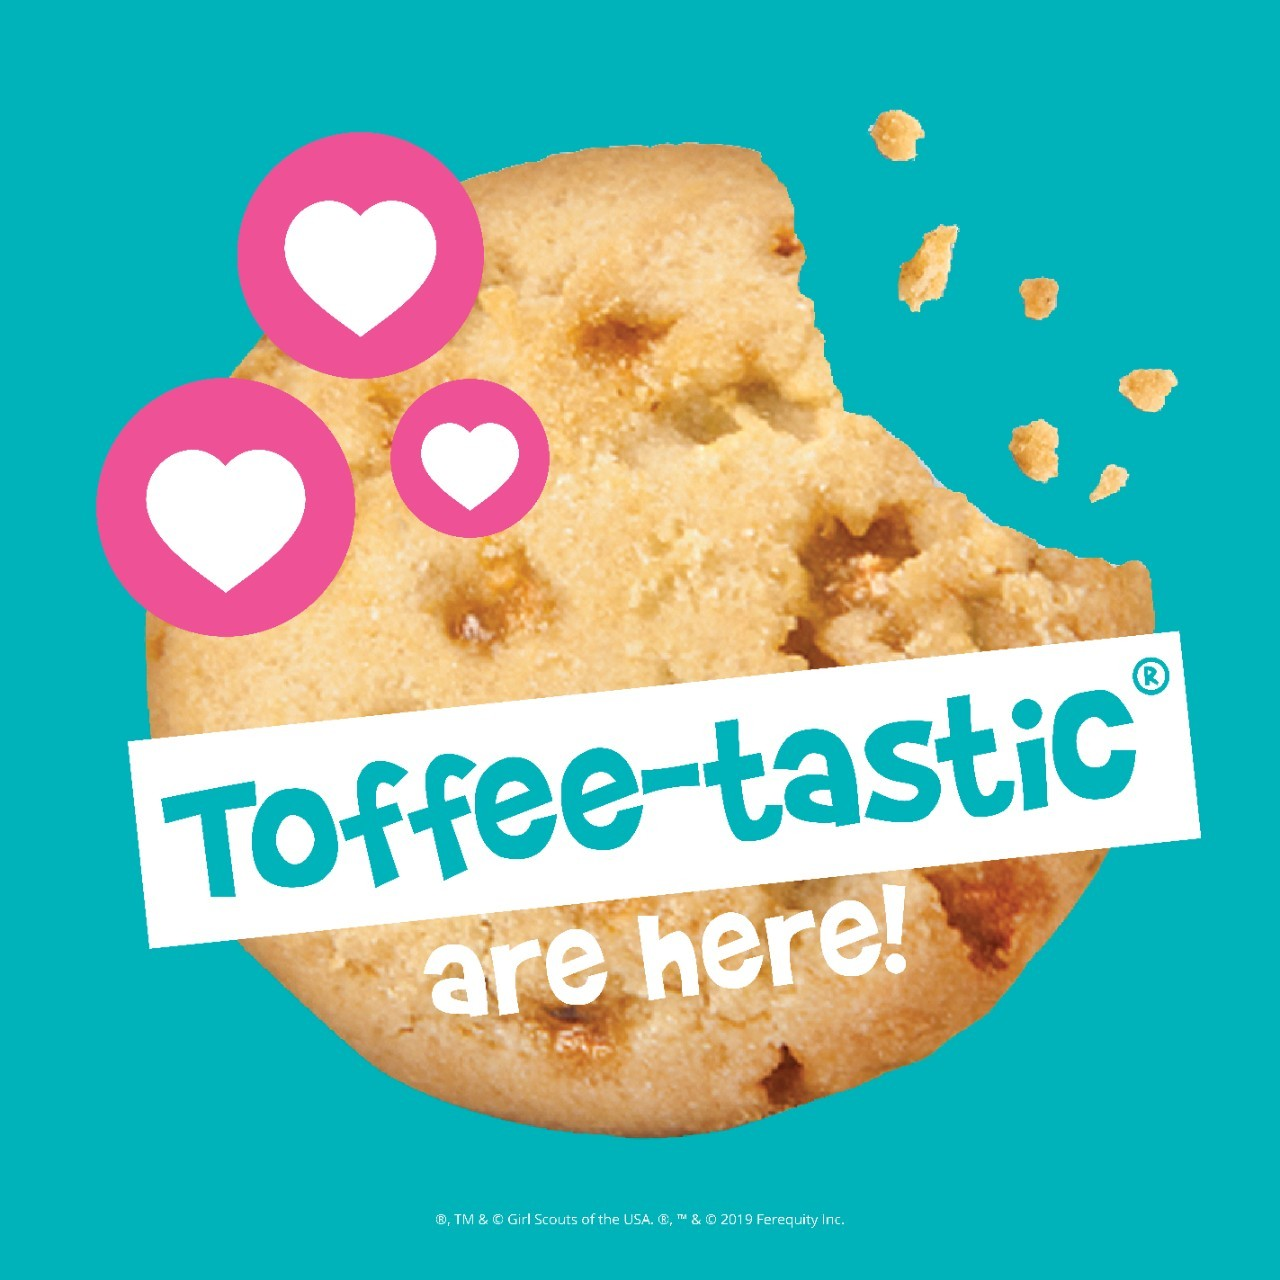 Toffee-tastic are here